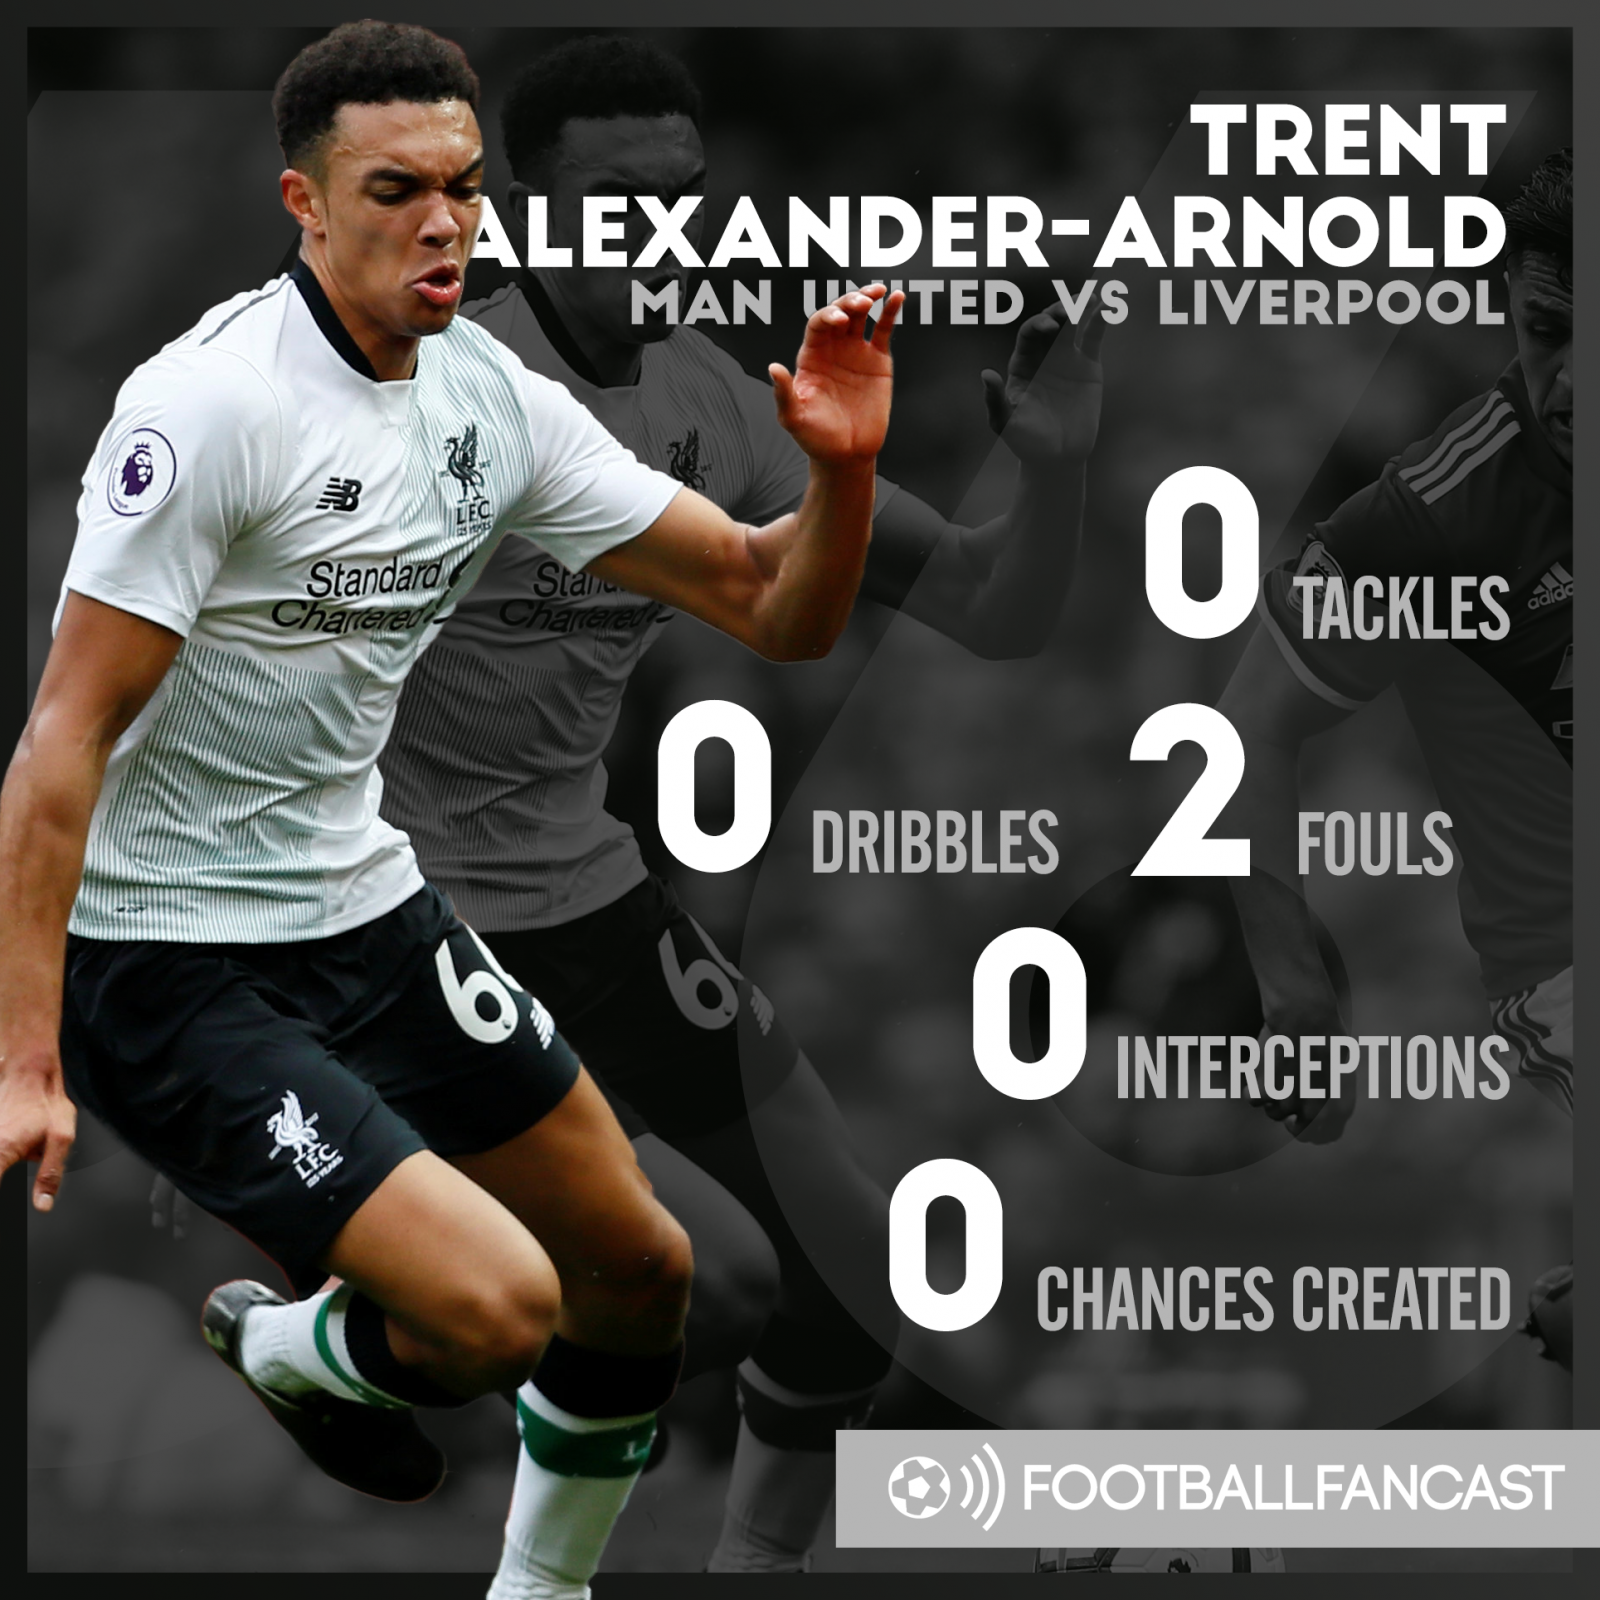 Trent Alexander-Arnold's stats from Liverpool's 2-1 loss to Manchester United